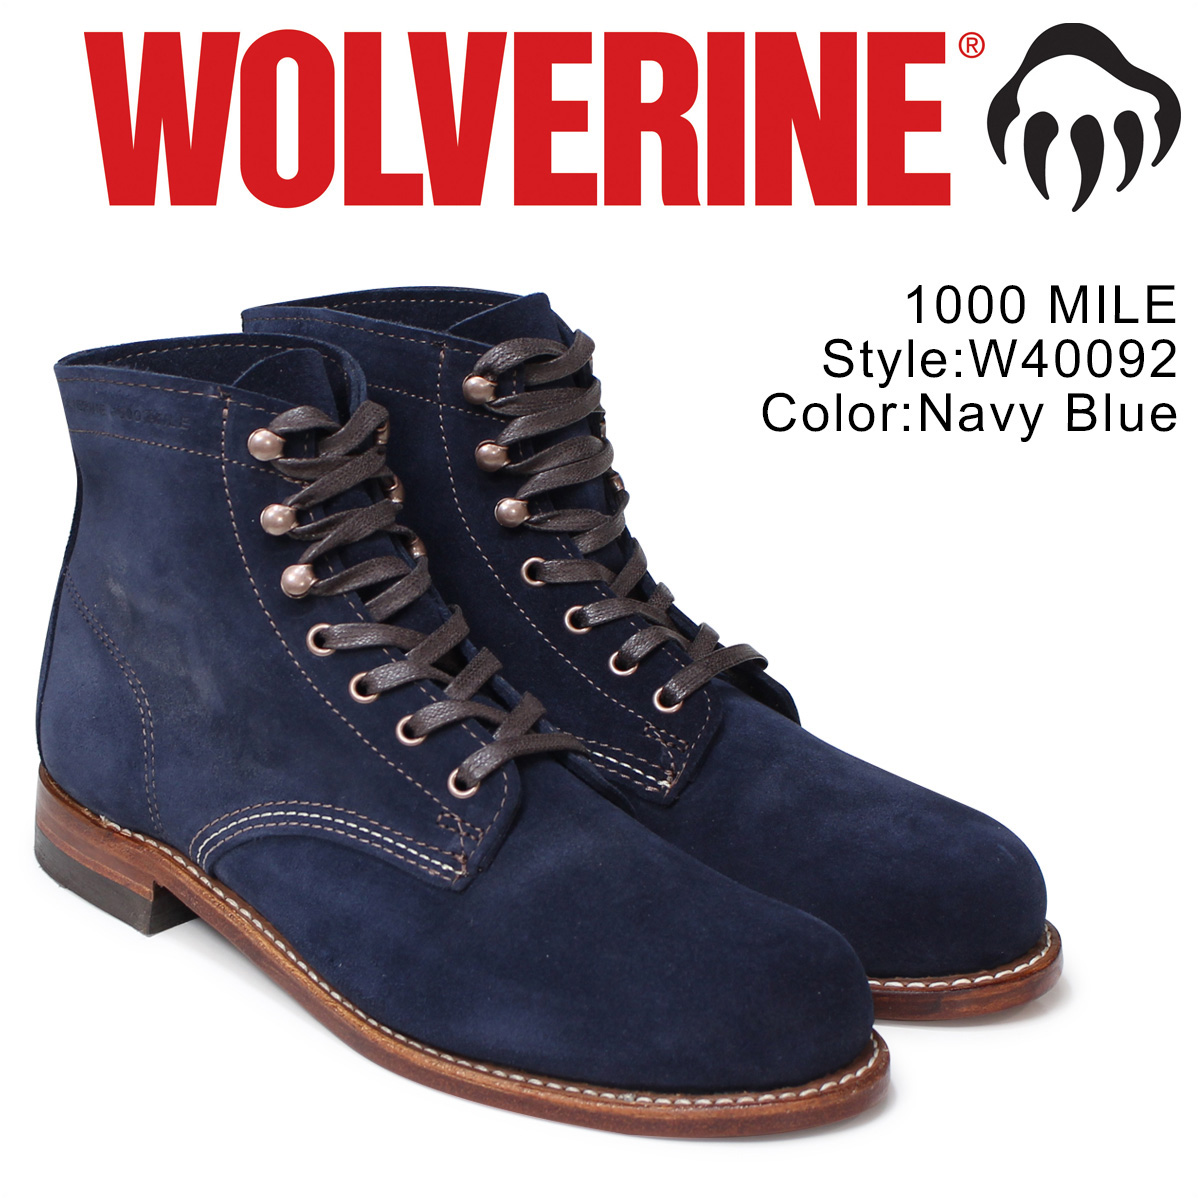 0f8df6b1d63 1000 WOLVERINE 1000 マイルブーツウルヴァリン 1000MILE work boots men MILE BOOT D Wise  W40092 navies